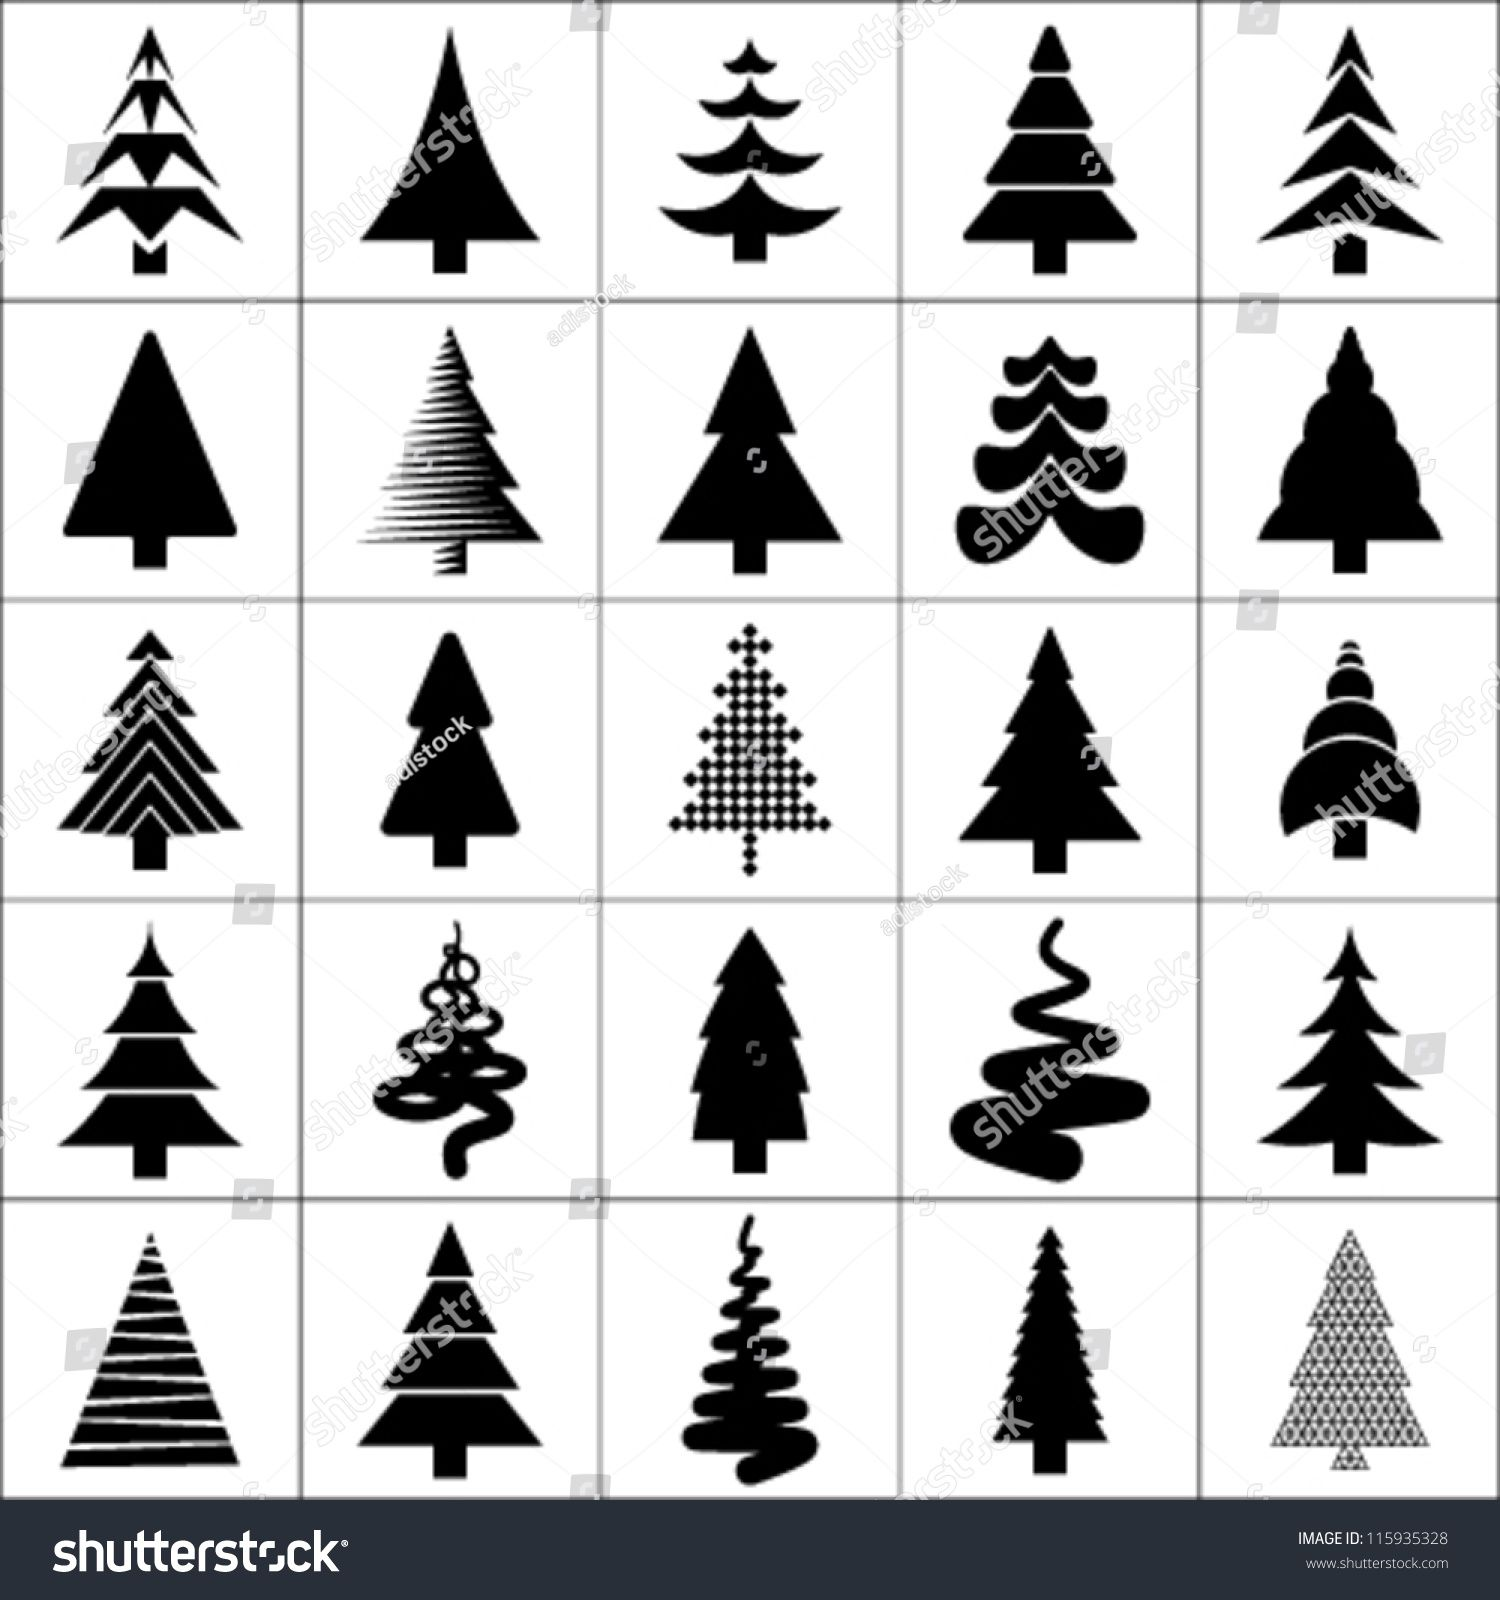 Christmas Tree Silhouette Design Vector Set Concept Tree Icon Collection Isolated On White Background Christmas Tree Silhouette Tree Icon Tree Silhouette